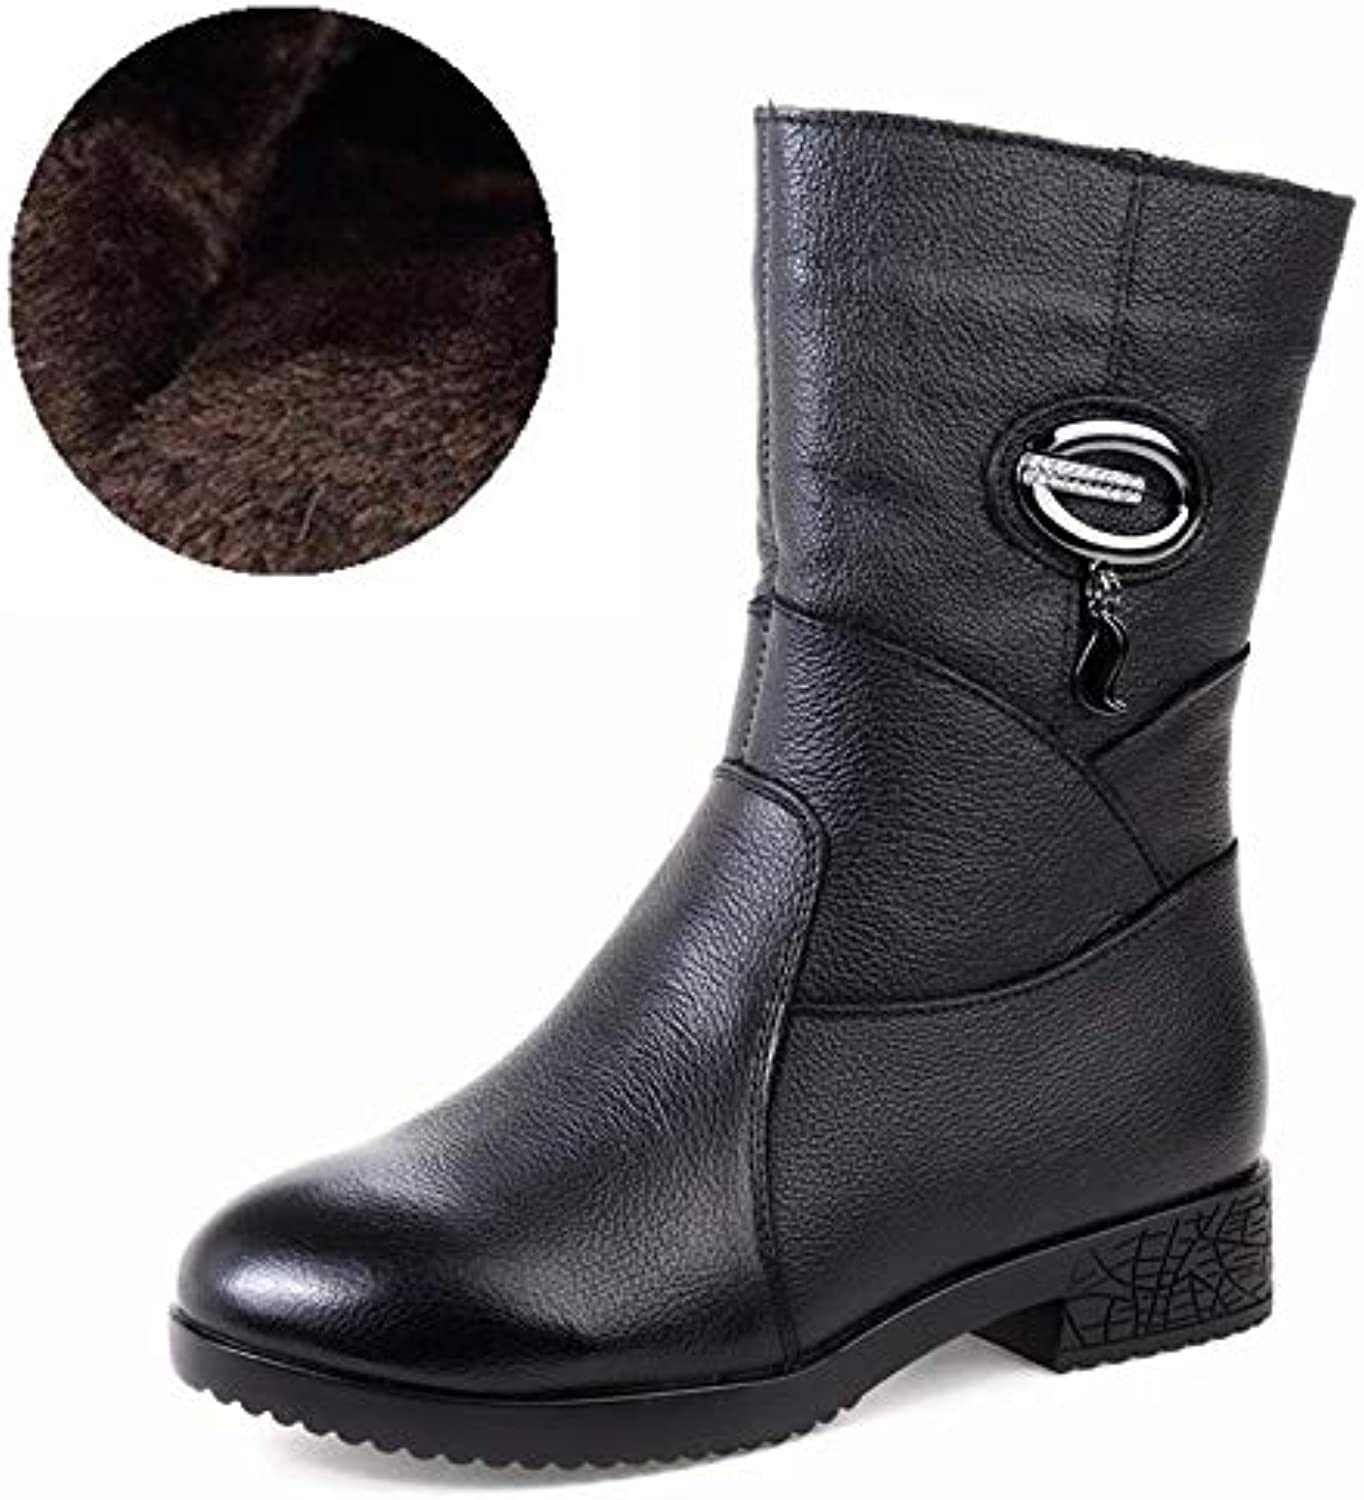 DDL- Snow Boots 2018 Women Winter Boots Genuine Leather Zipper Square Heel Thick Plush Warm Snow Boots Women Low Heel Mid Calf Boots